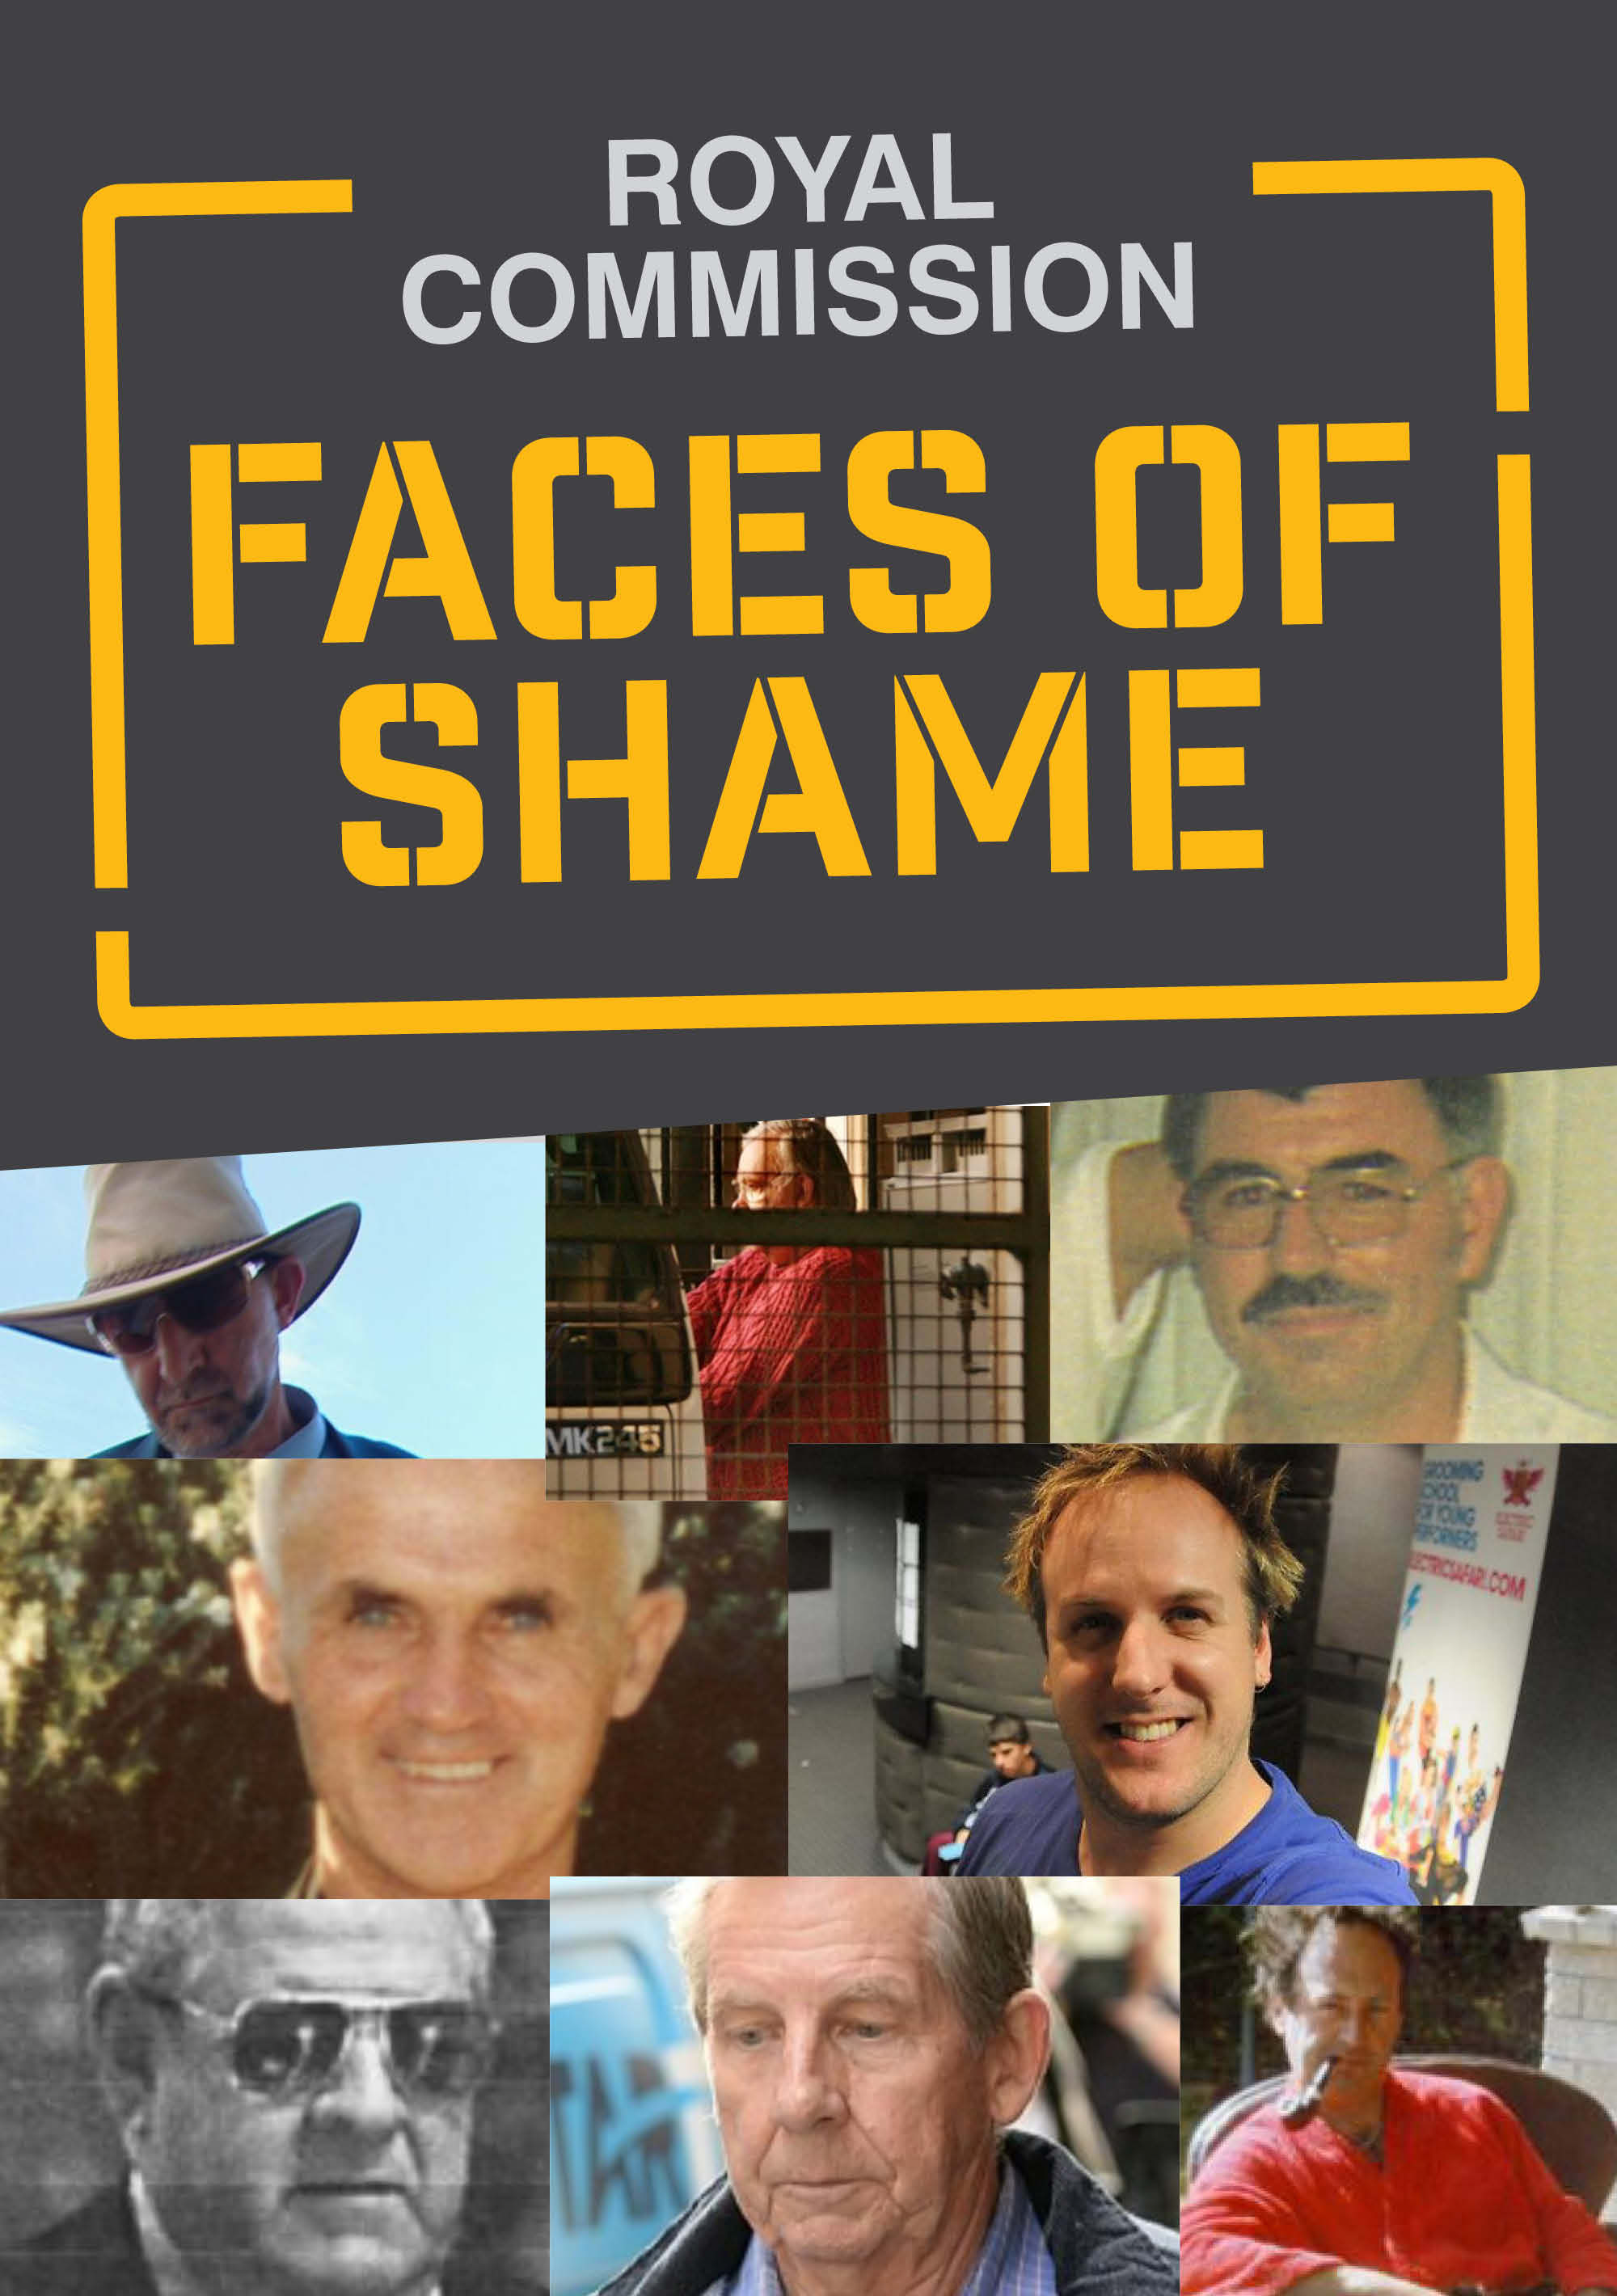 Royal Commission Faces of Shame